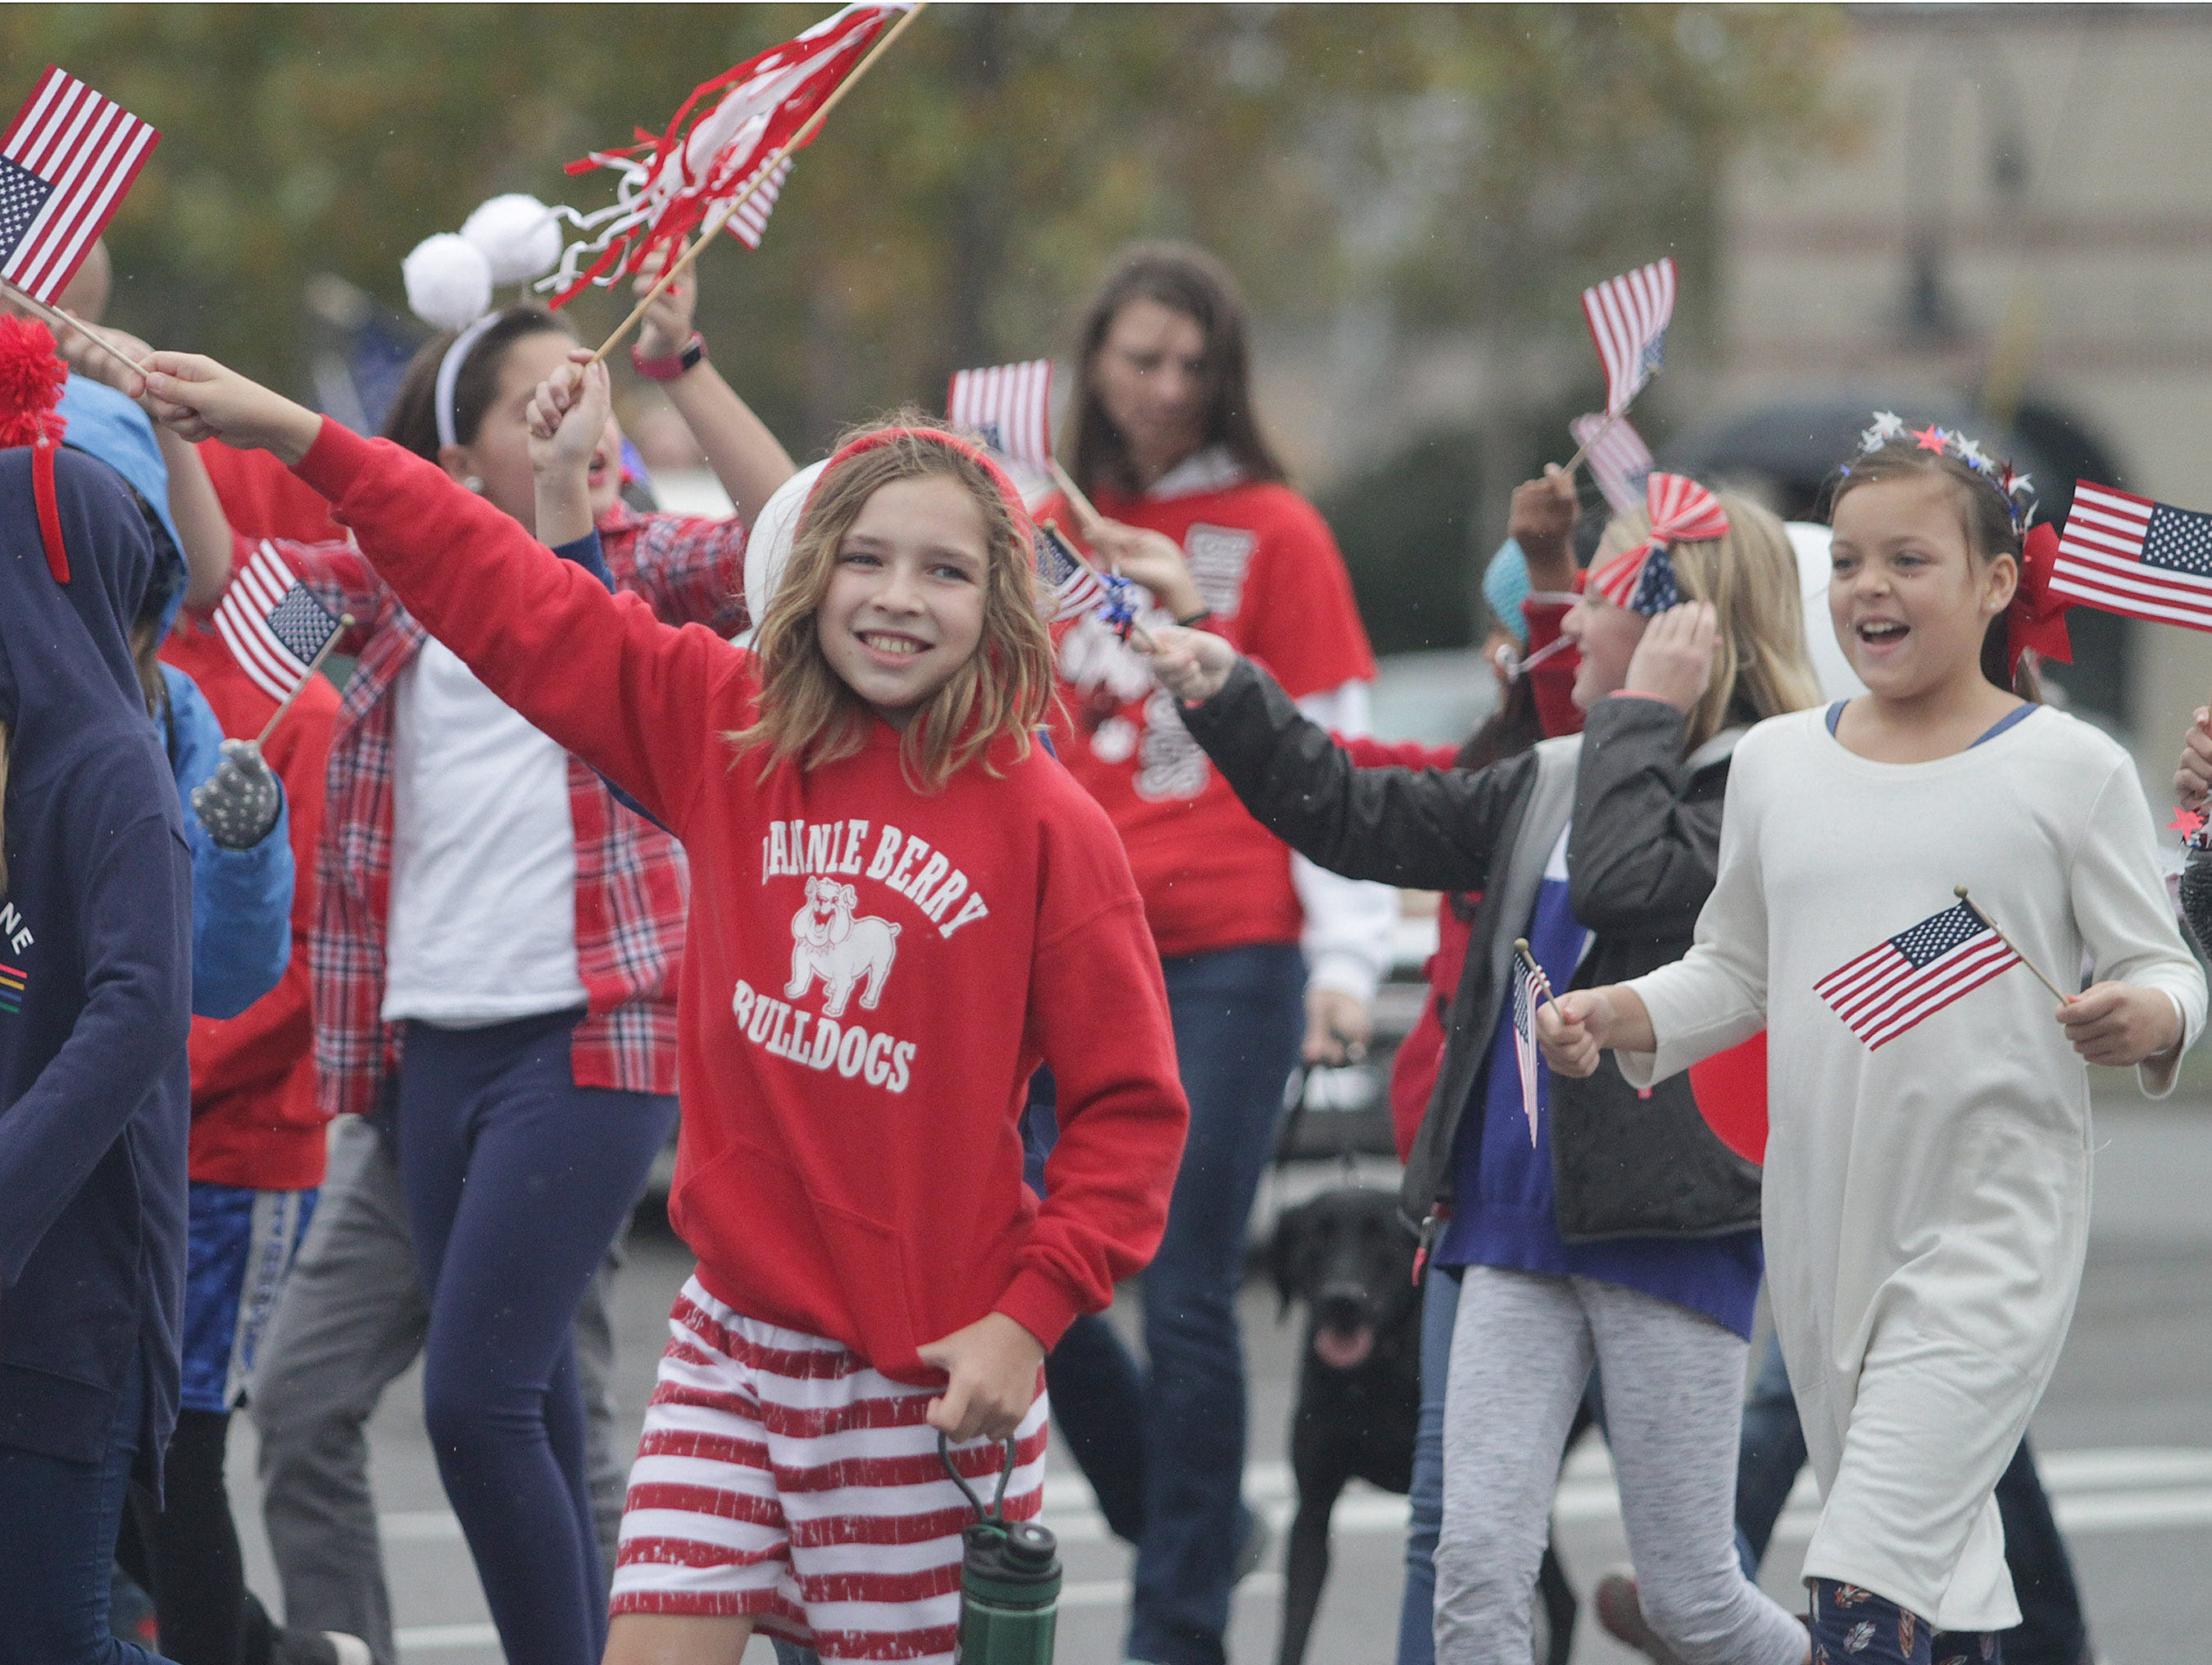 Students from the Nannie Berry Elementary School march in the Veterans Day Parade in Hendersonville, TN on Sunday, November 4, 2018.